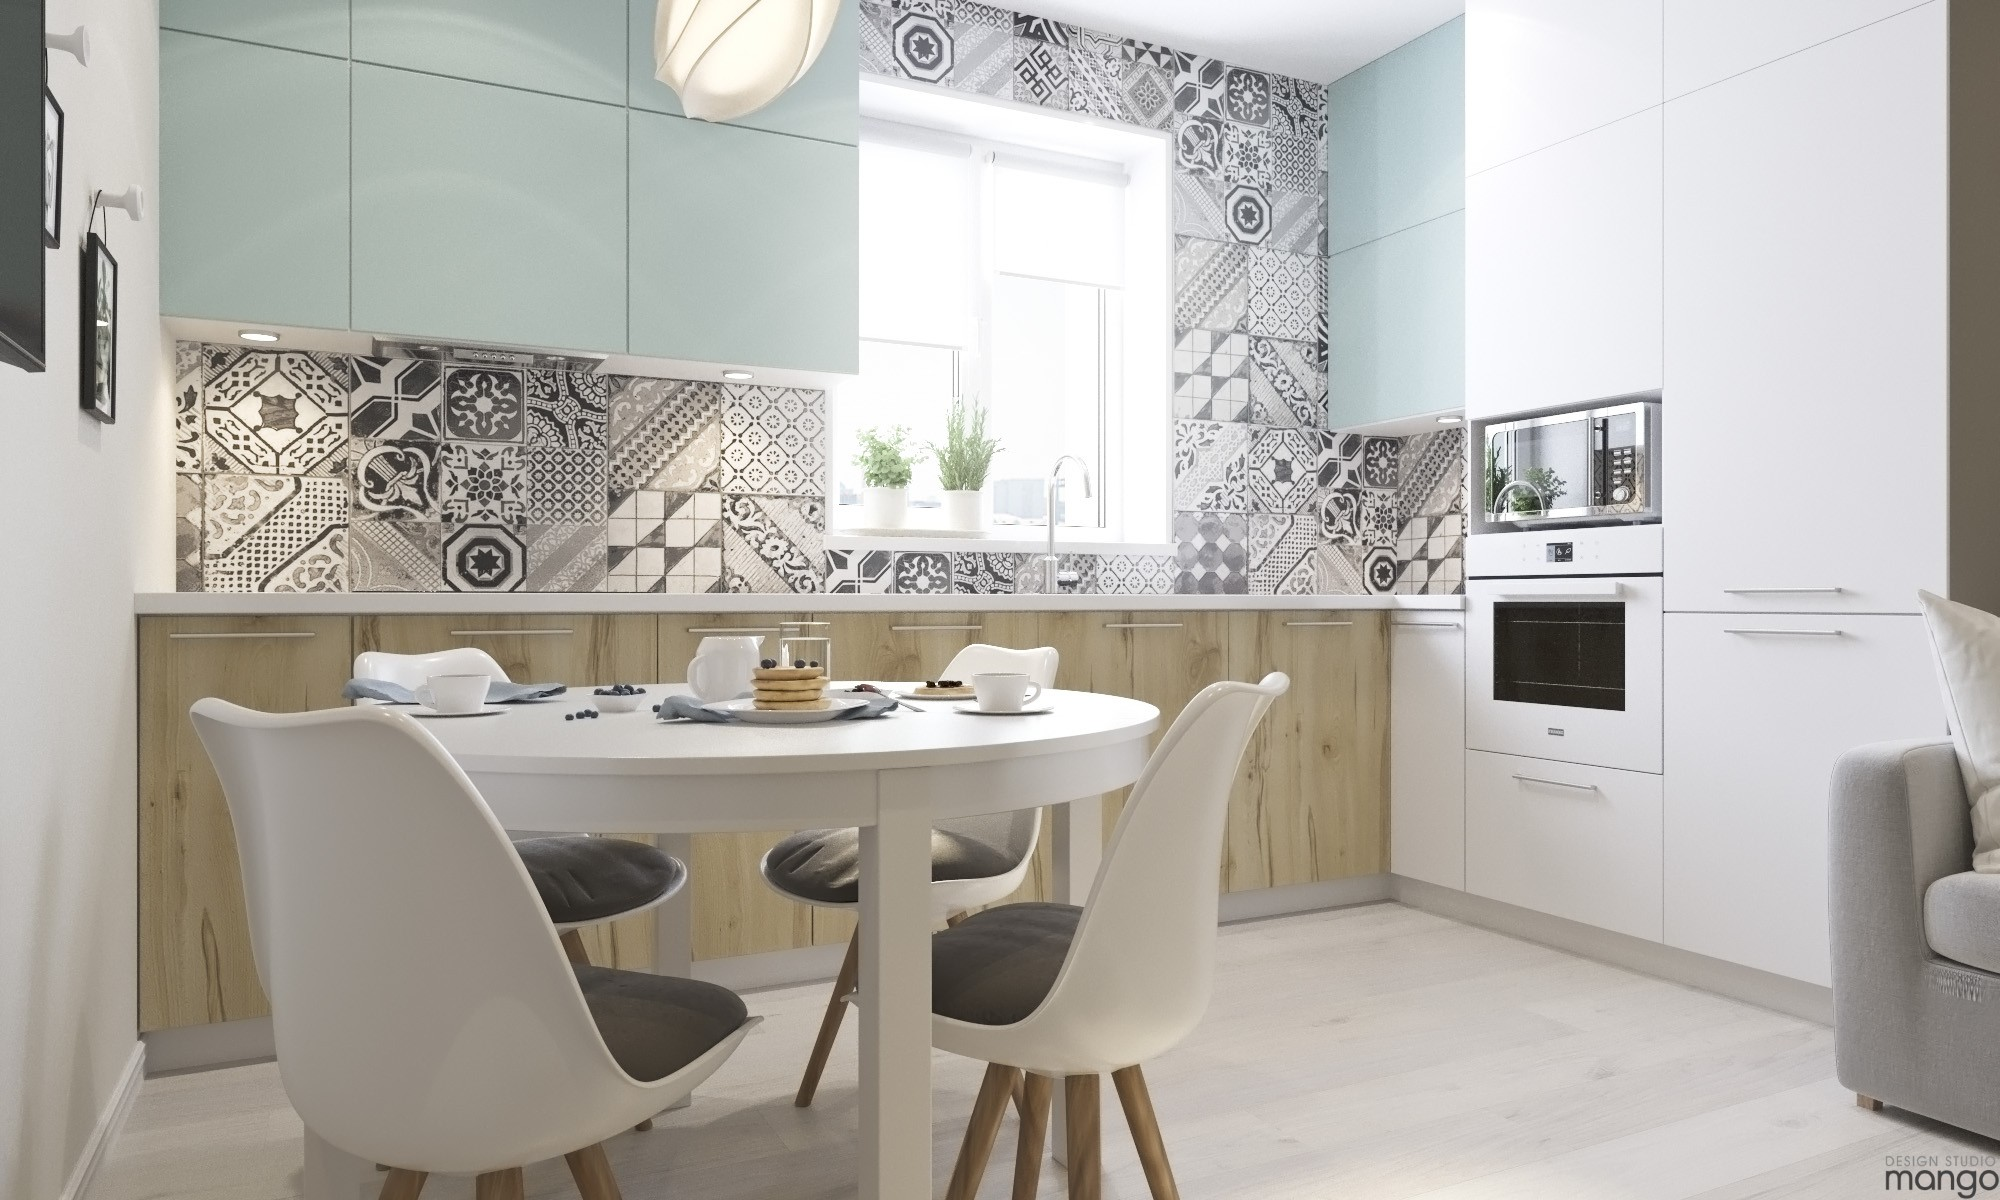 cute floral kitchen backsplash